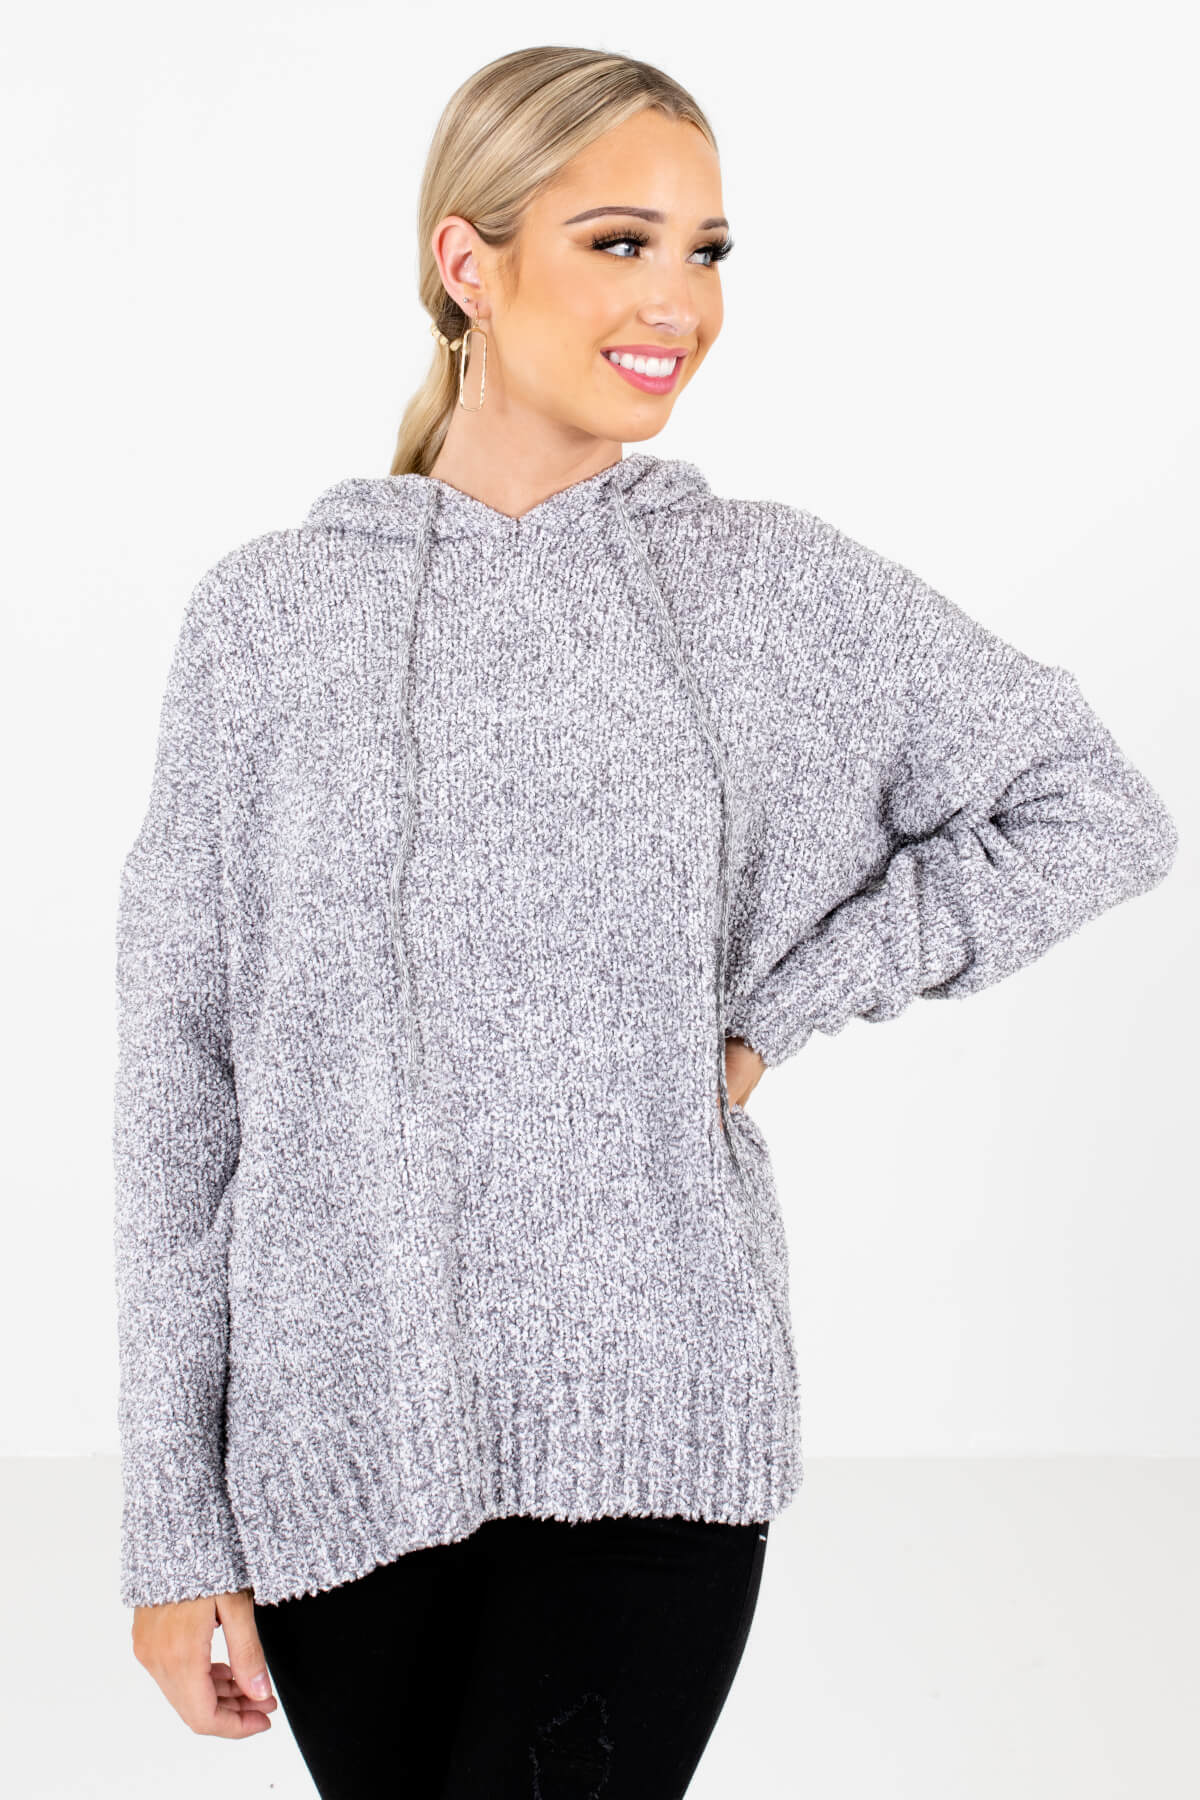 Gray Fuzzy Chenille Material Boutique Hoodies for Women